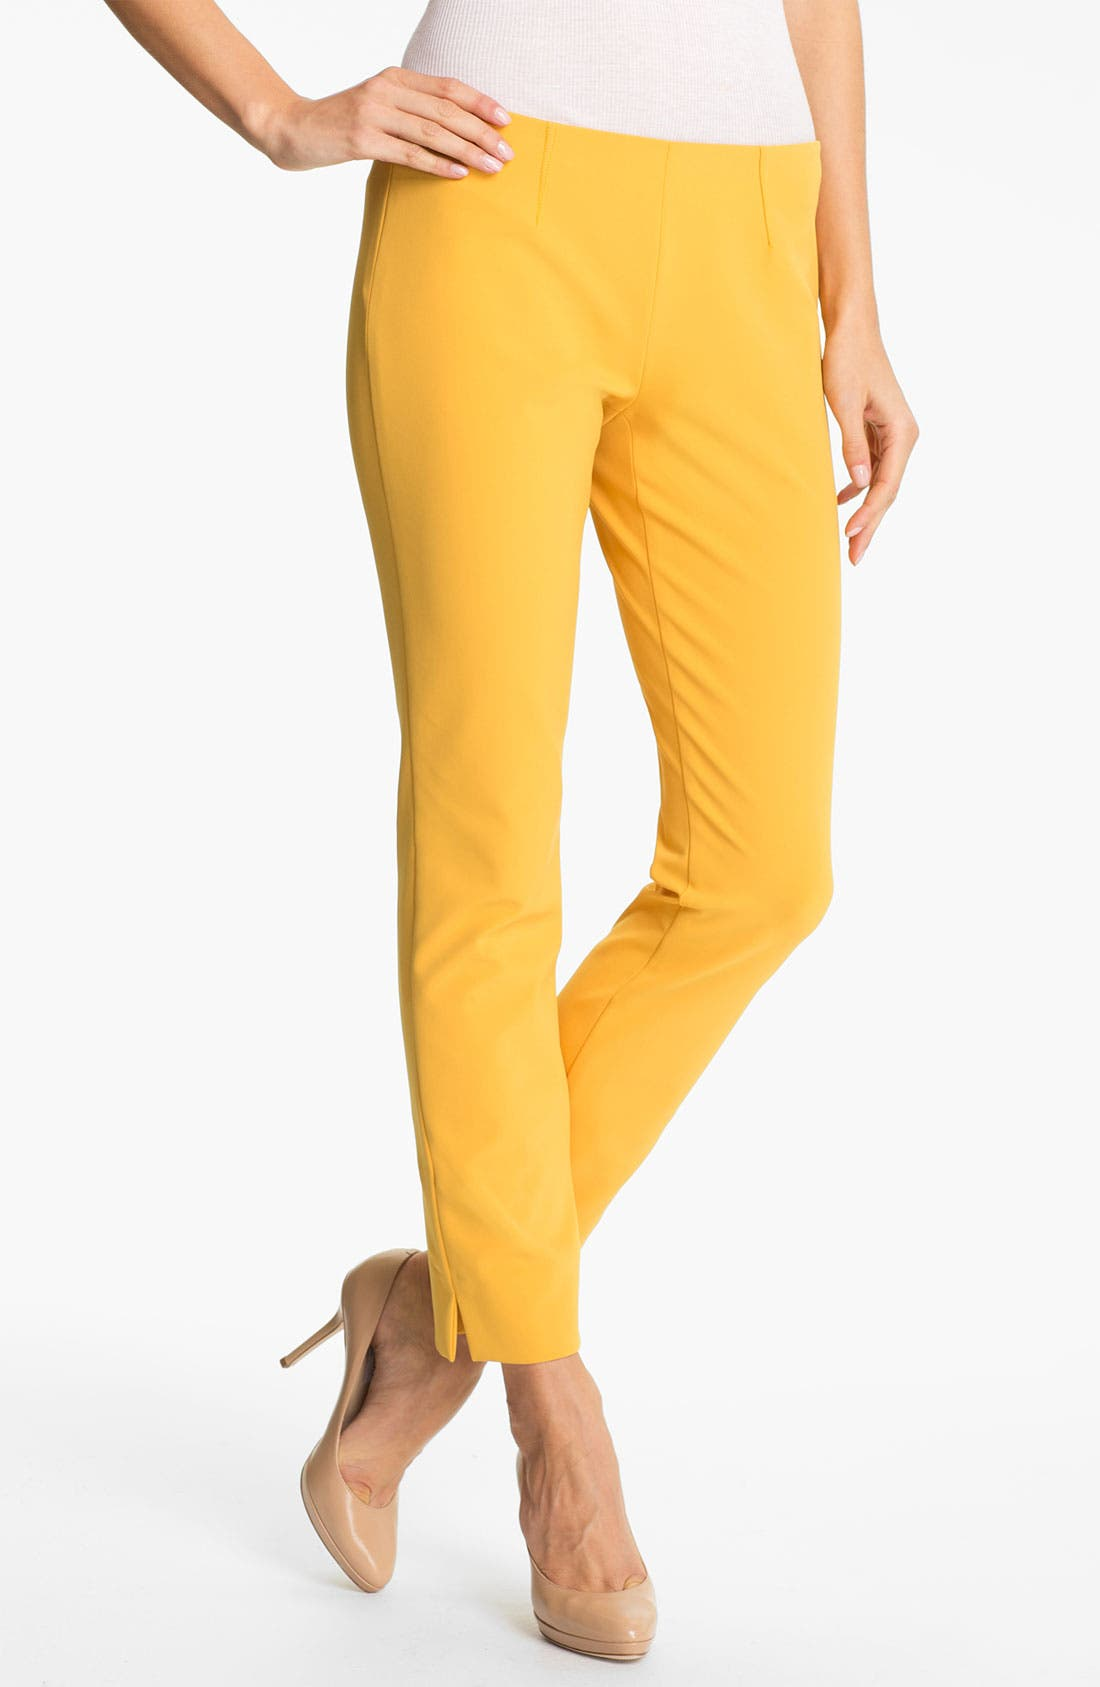 Alternate Image 1 Selected - Theory 'Belisa' Slim Leg Stretch Pants